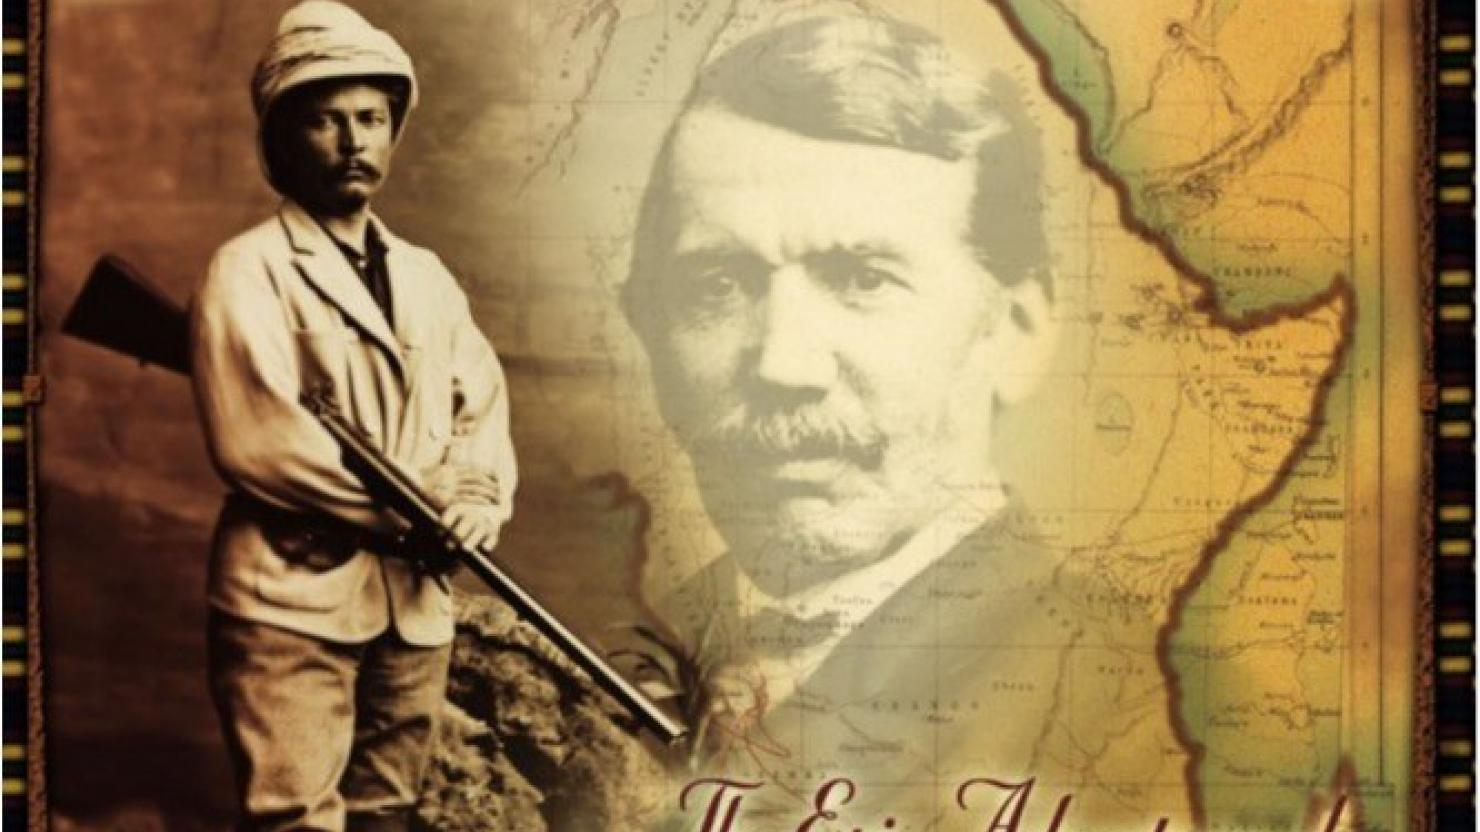 Review: Into Africa the epic adventures of Stanley and Livingstone by Martin Dugard